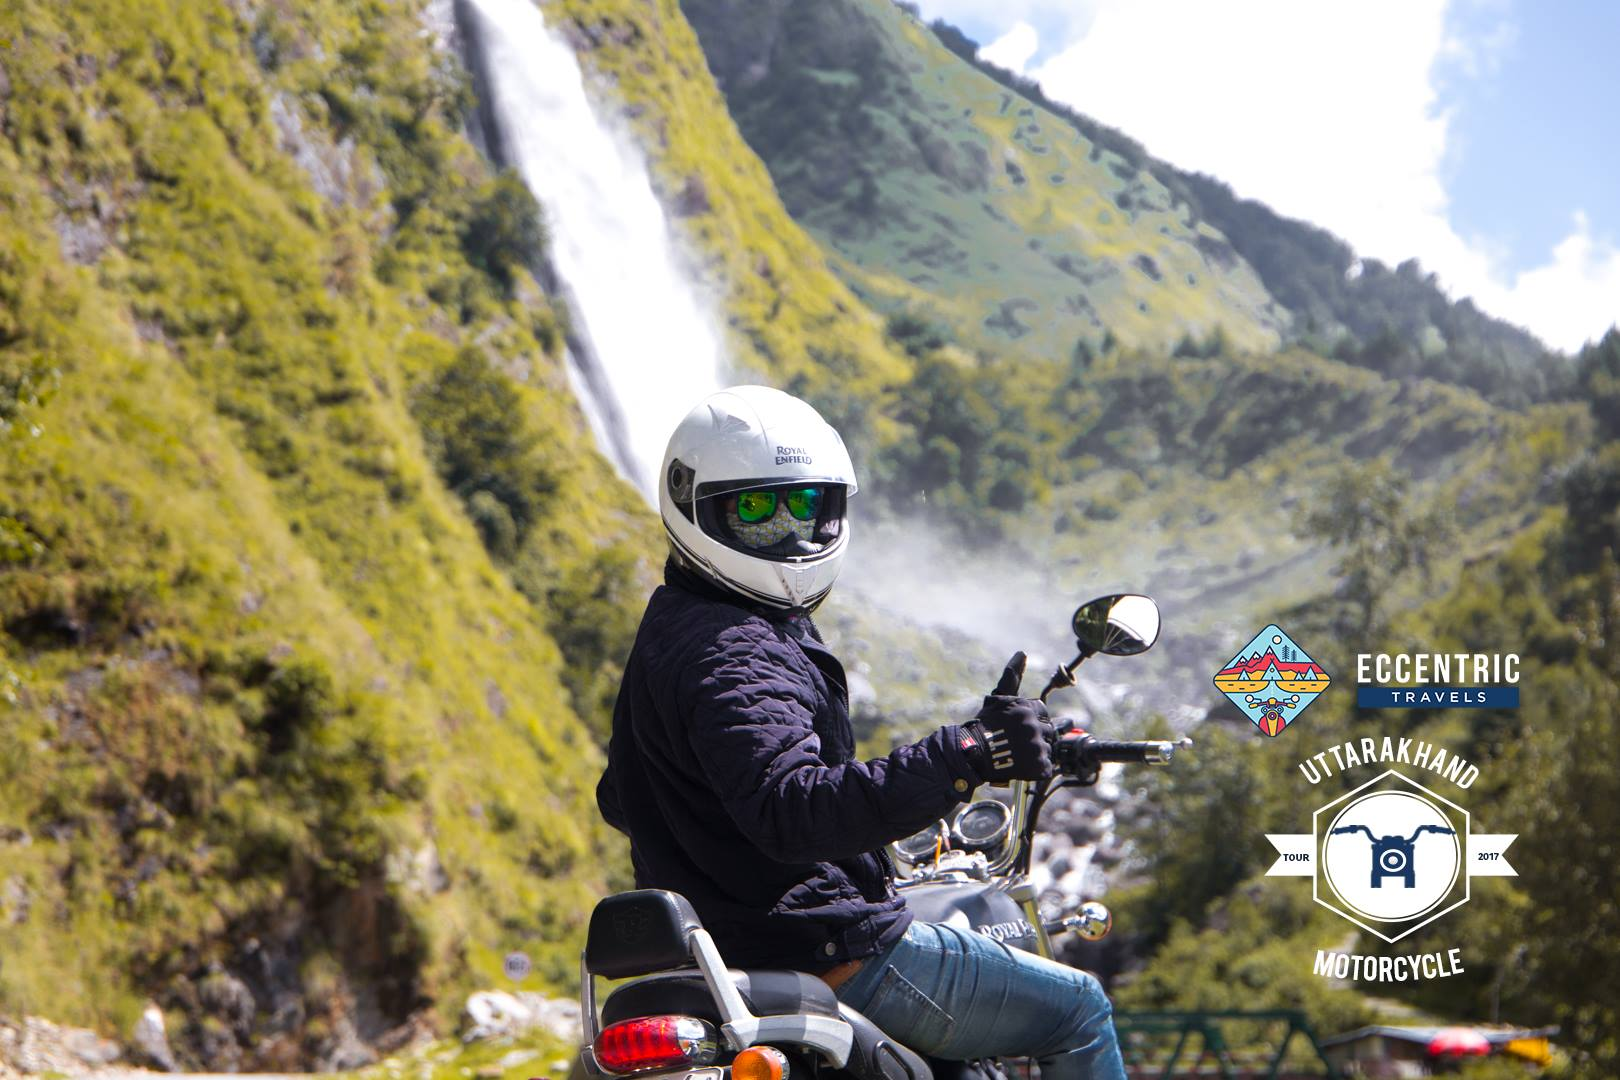 Uttarkhand Motorcycle Tour with Camping and Trekking Photos